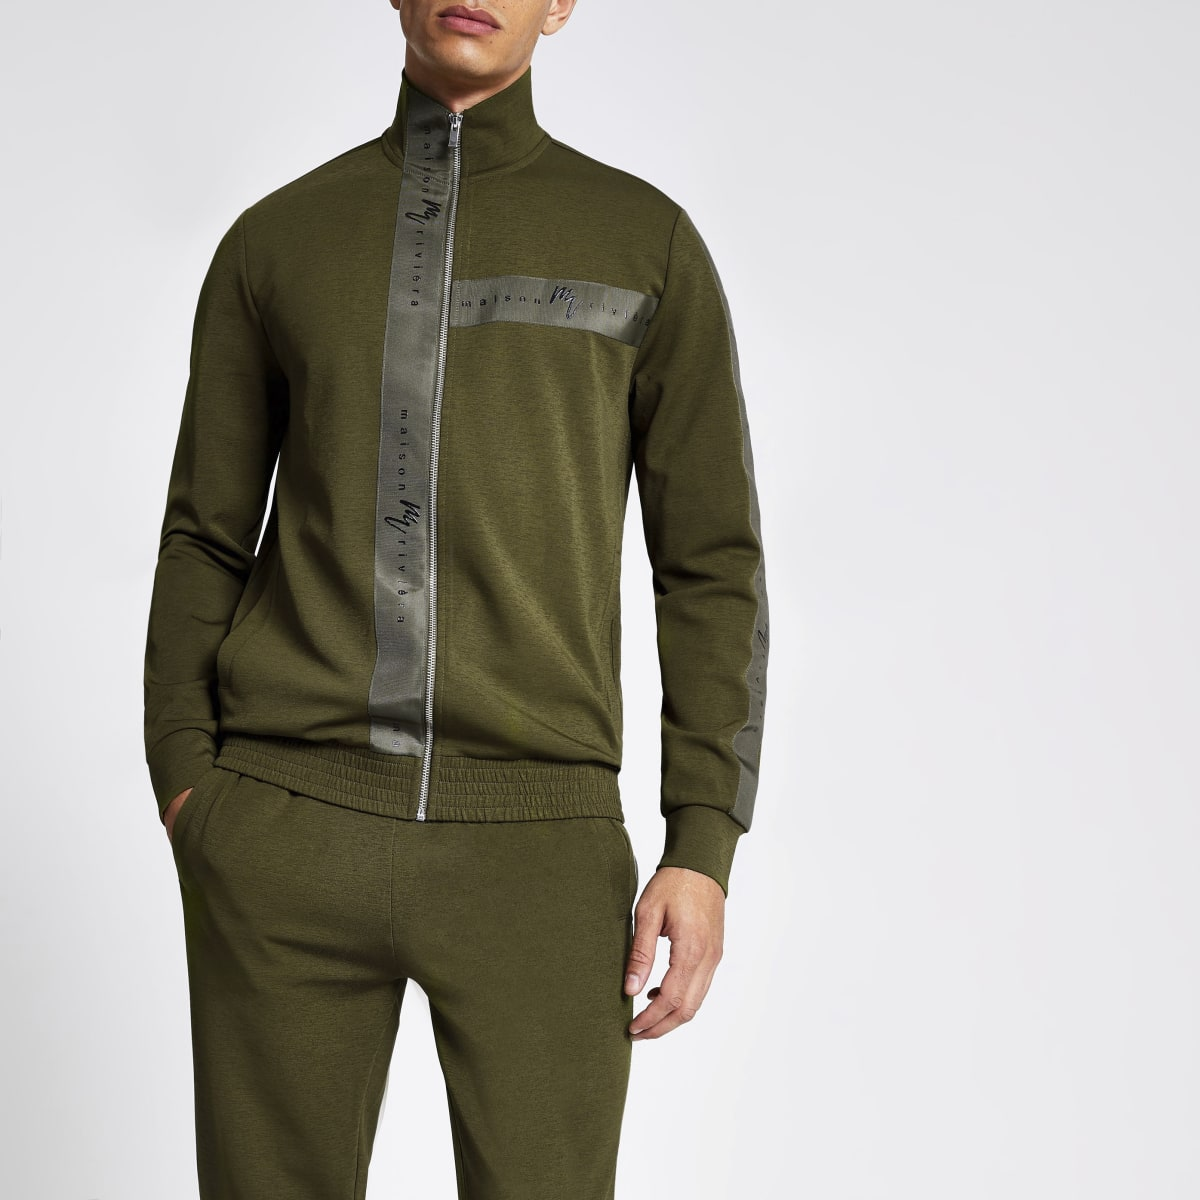 Khaki Maison Riviera slim fit track top